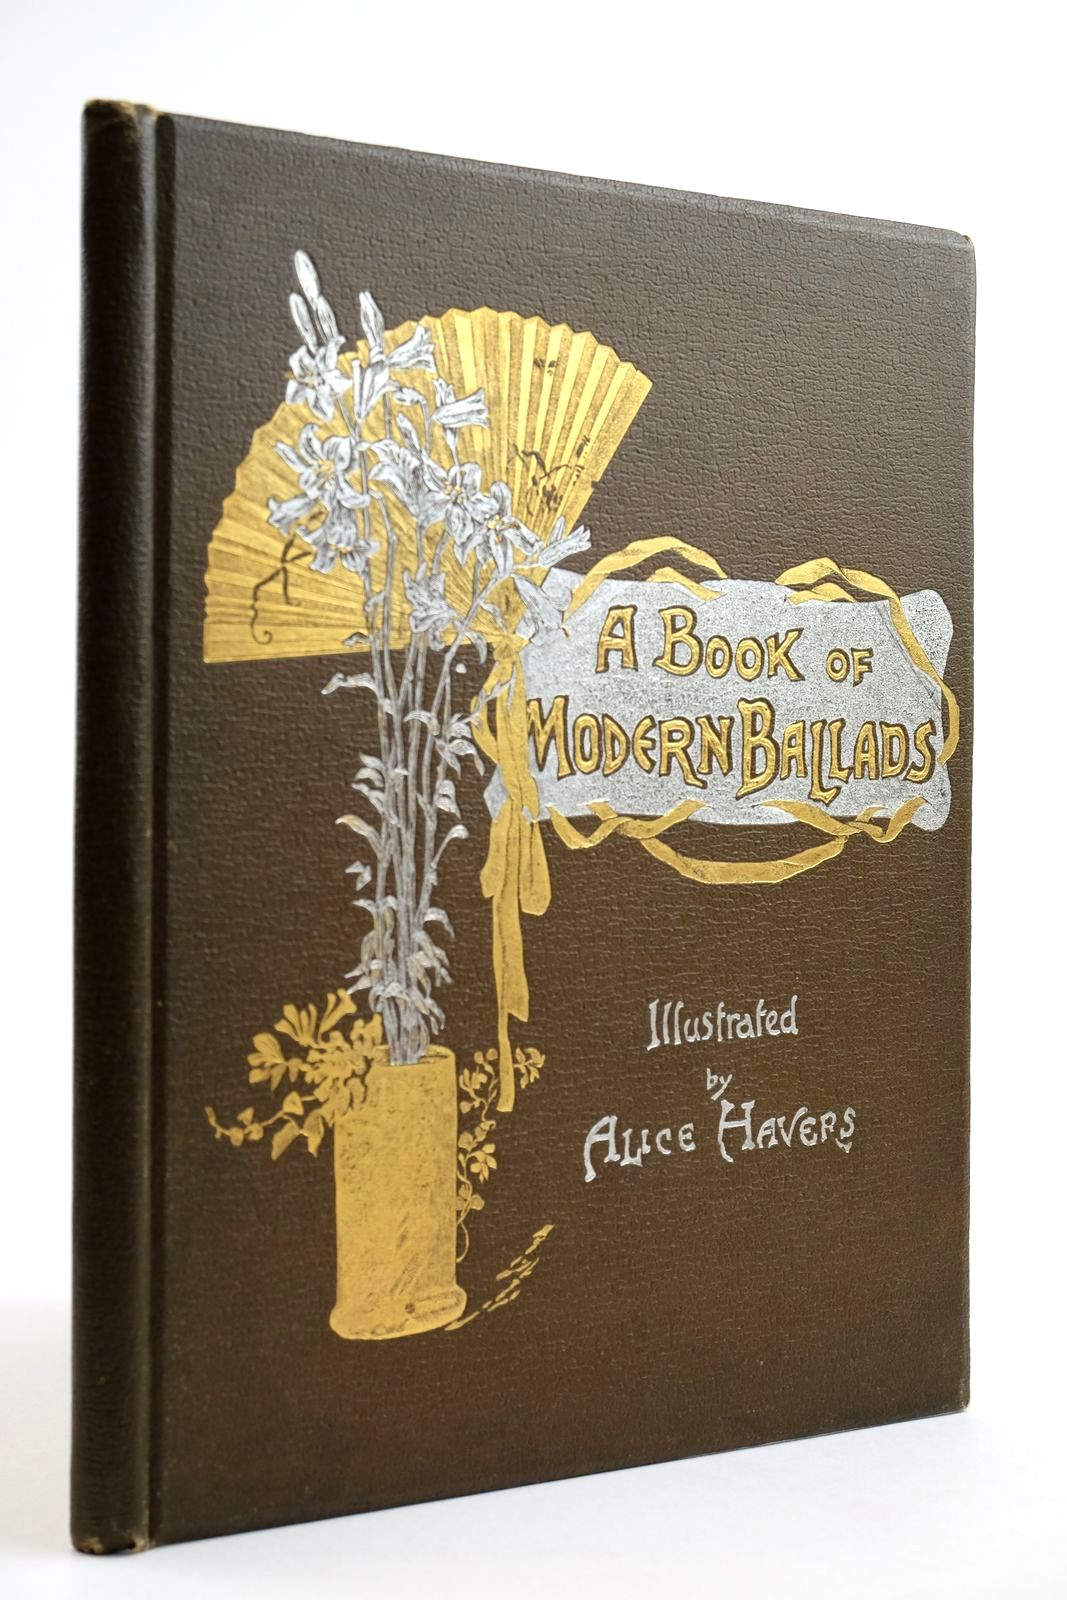 Photo of A BOOK OF MODERN BALLADS written by Browning, E.B. Gilbert, W.S. Weatherly, F.E. et al, illustrated by Havers, Alice Sunter, J. Pauline published by Hildesheimer & Faulkner (STOCK CODE: 2133907)  for sale by Stella & Rose's Books